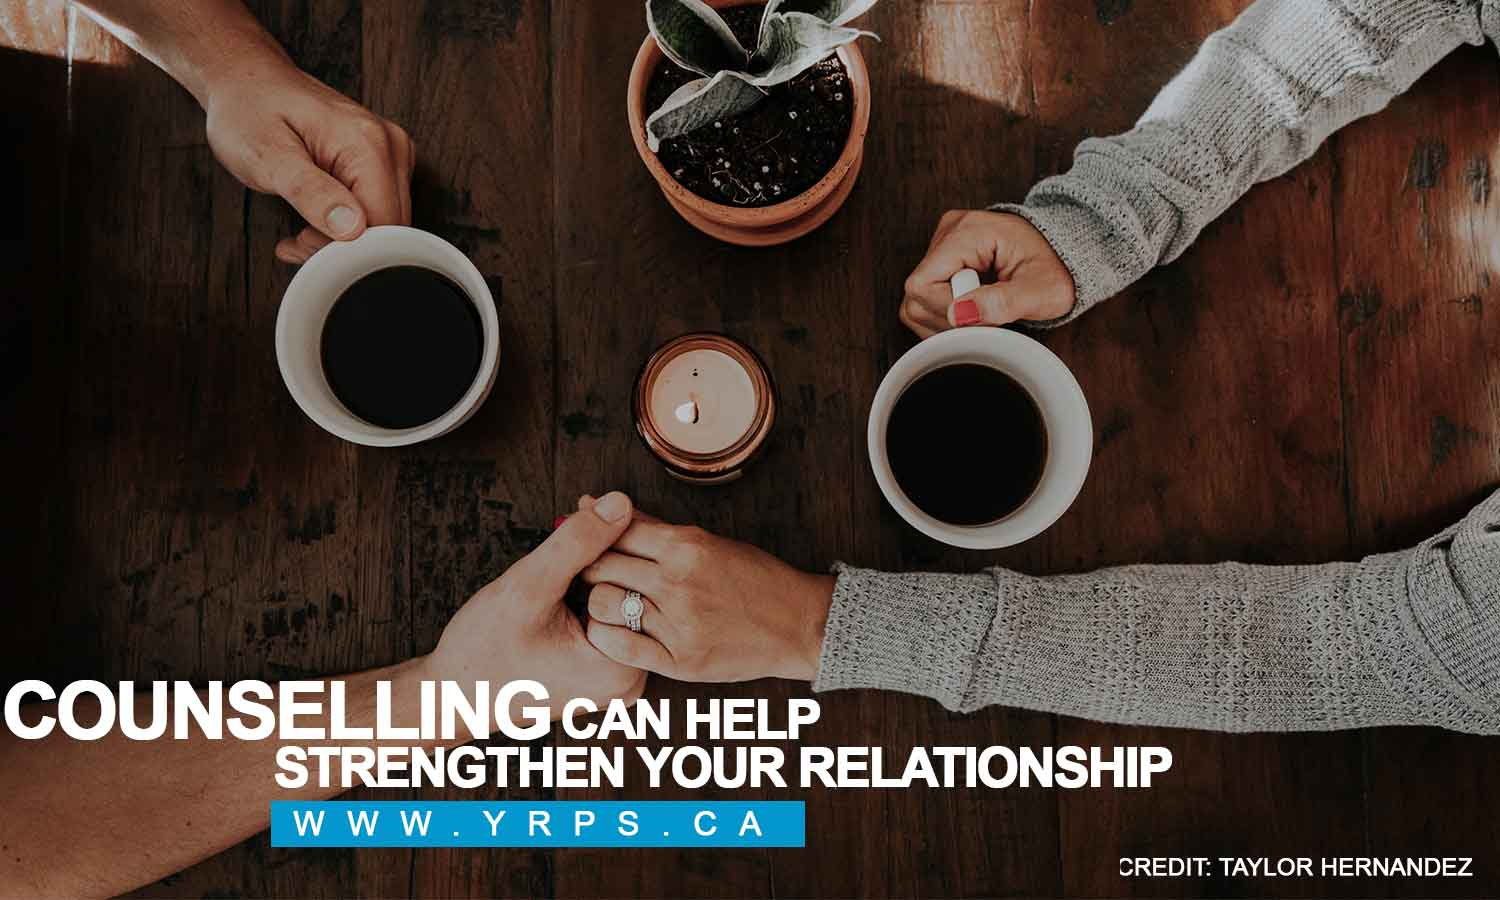 Counselling can help strengthen your relationship